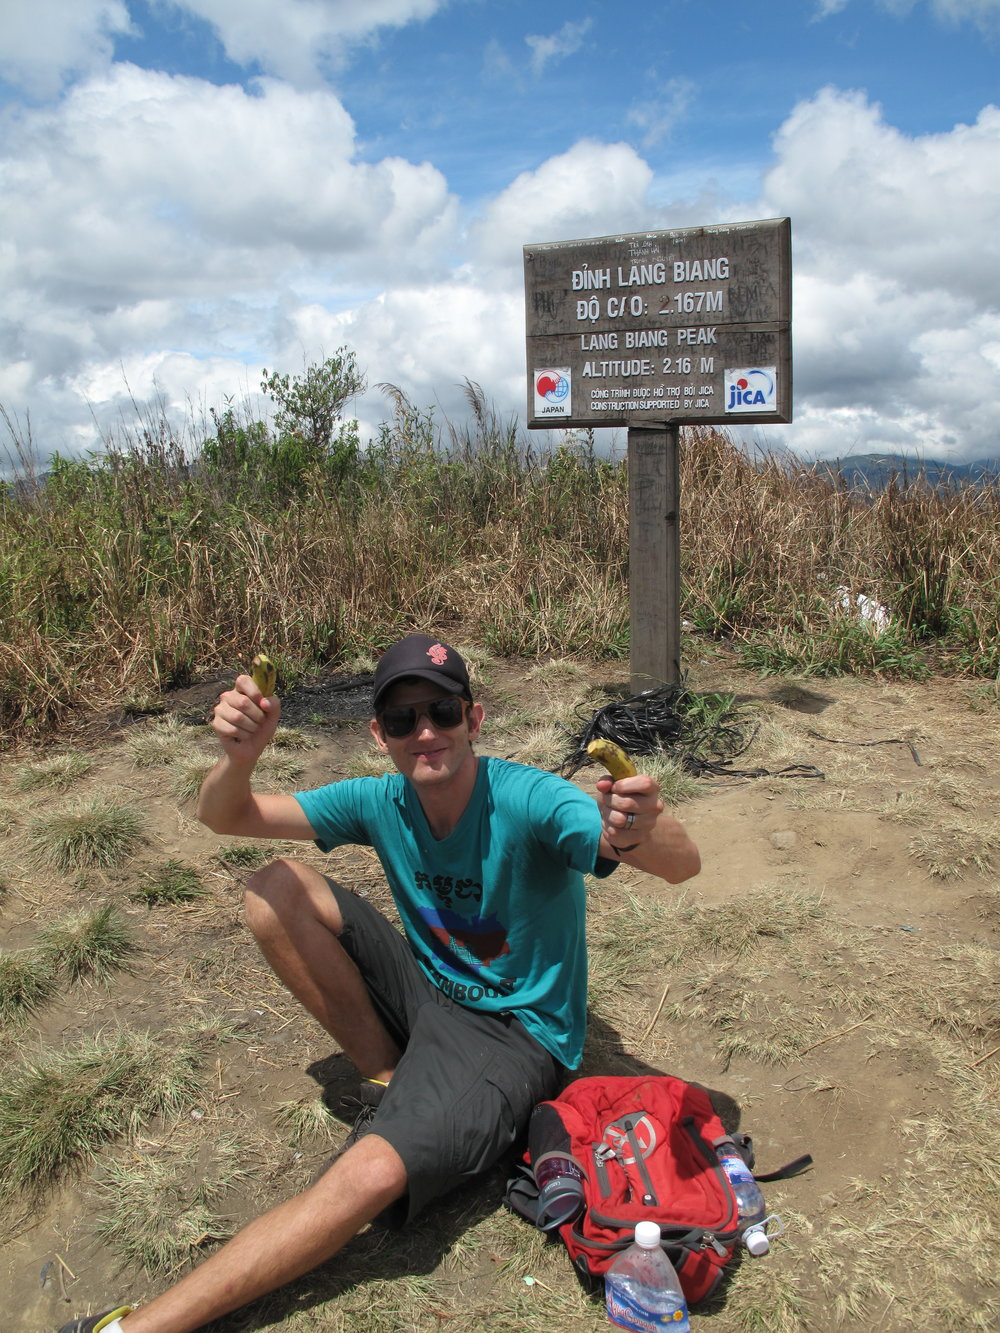 We did it! Lunchtime, Three Peaks hike, Dalat